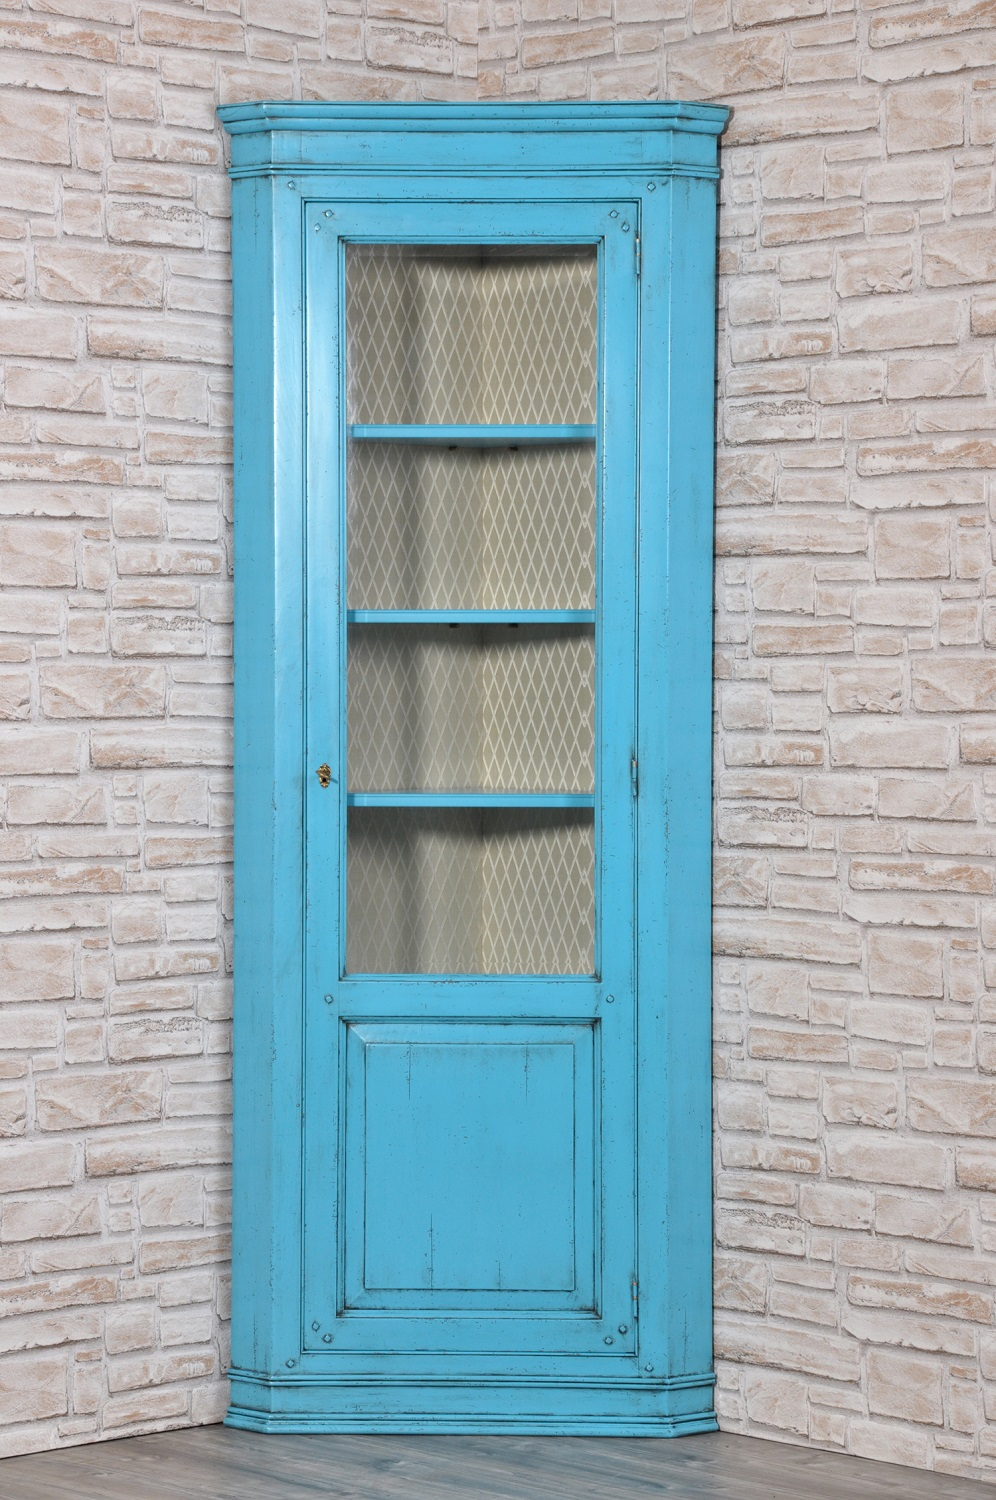 Legno Laccato Su Misura single leaf door antiqued turquoise-lacquered display